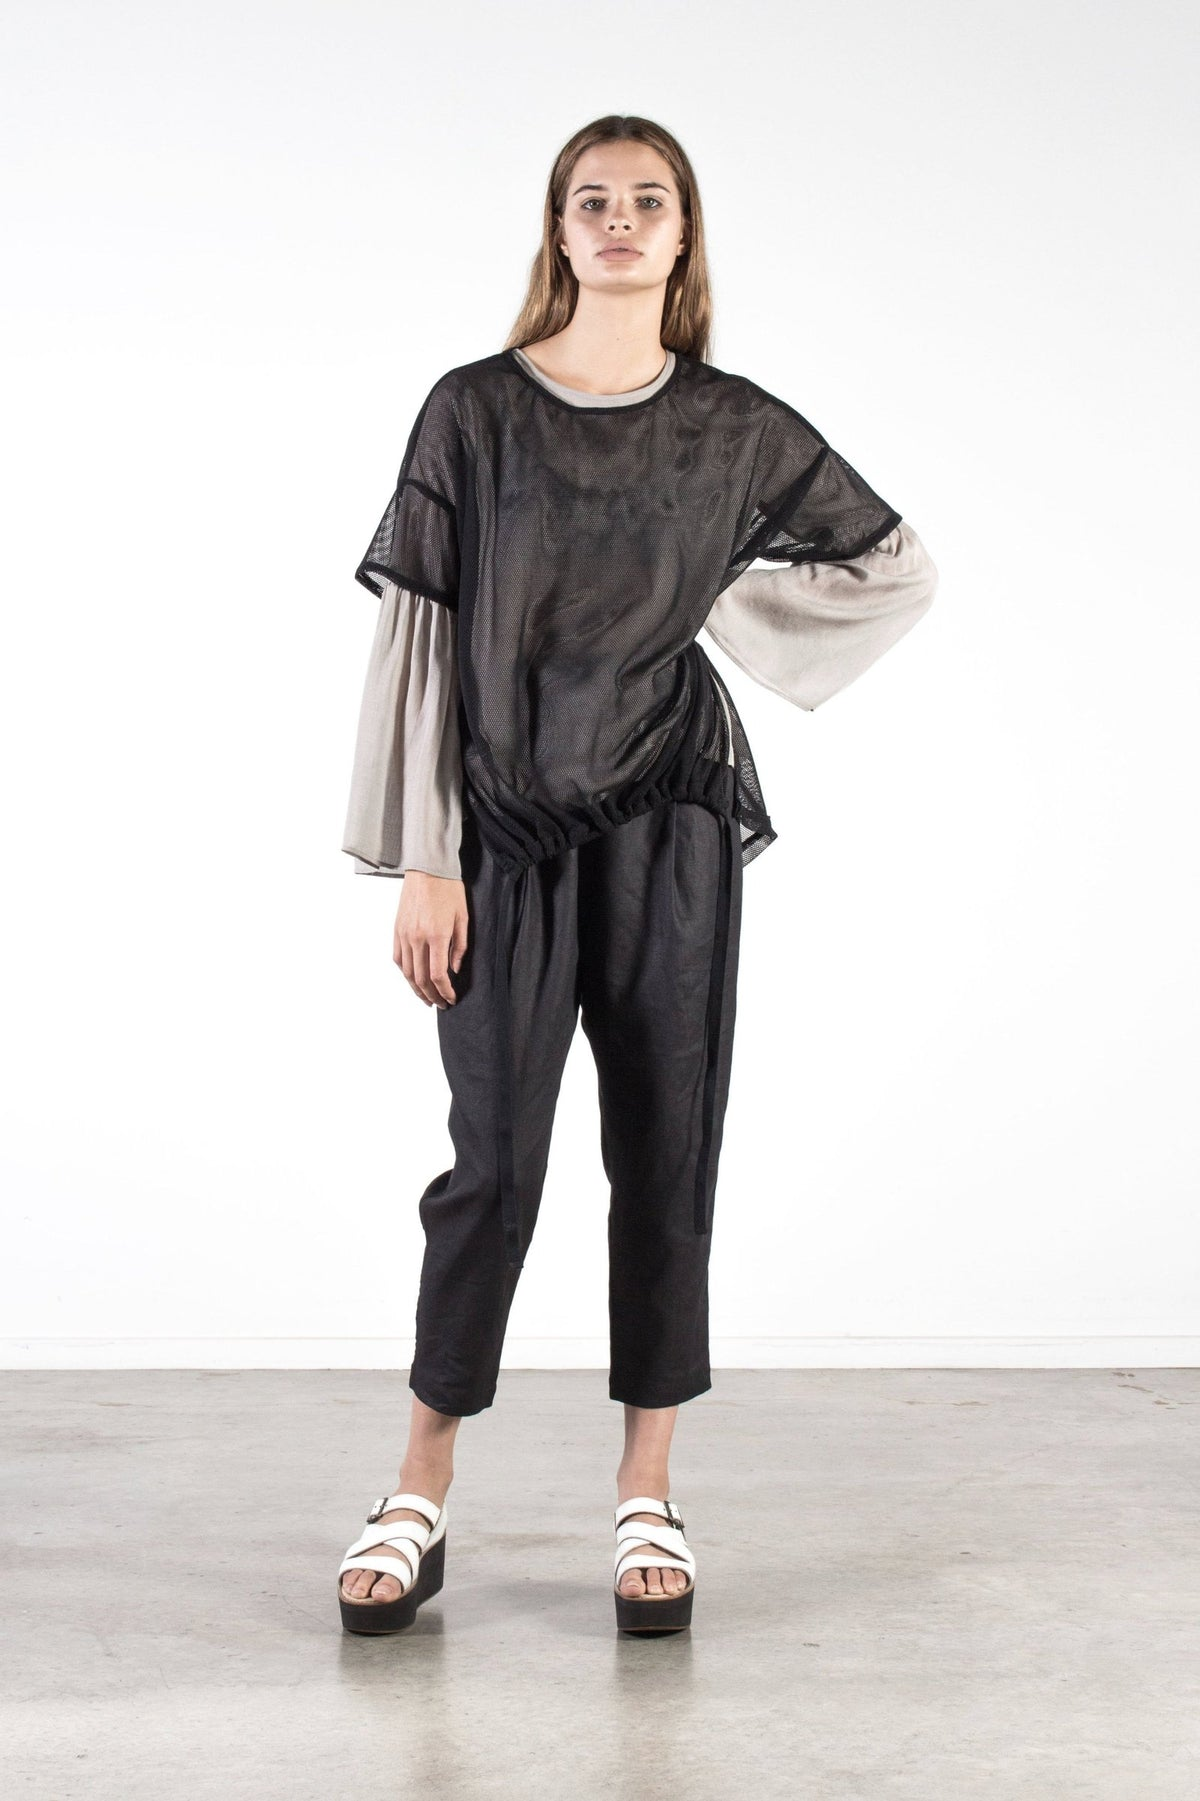 Nyne Siena Top in Ash Gauze Summer Season New Zealand Designer Fashion NZ Made Wool weave yne stockists auckland parnell online